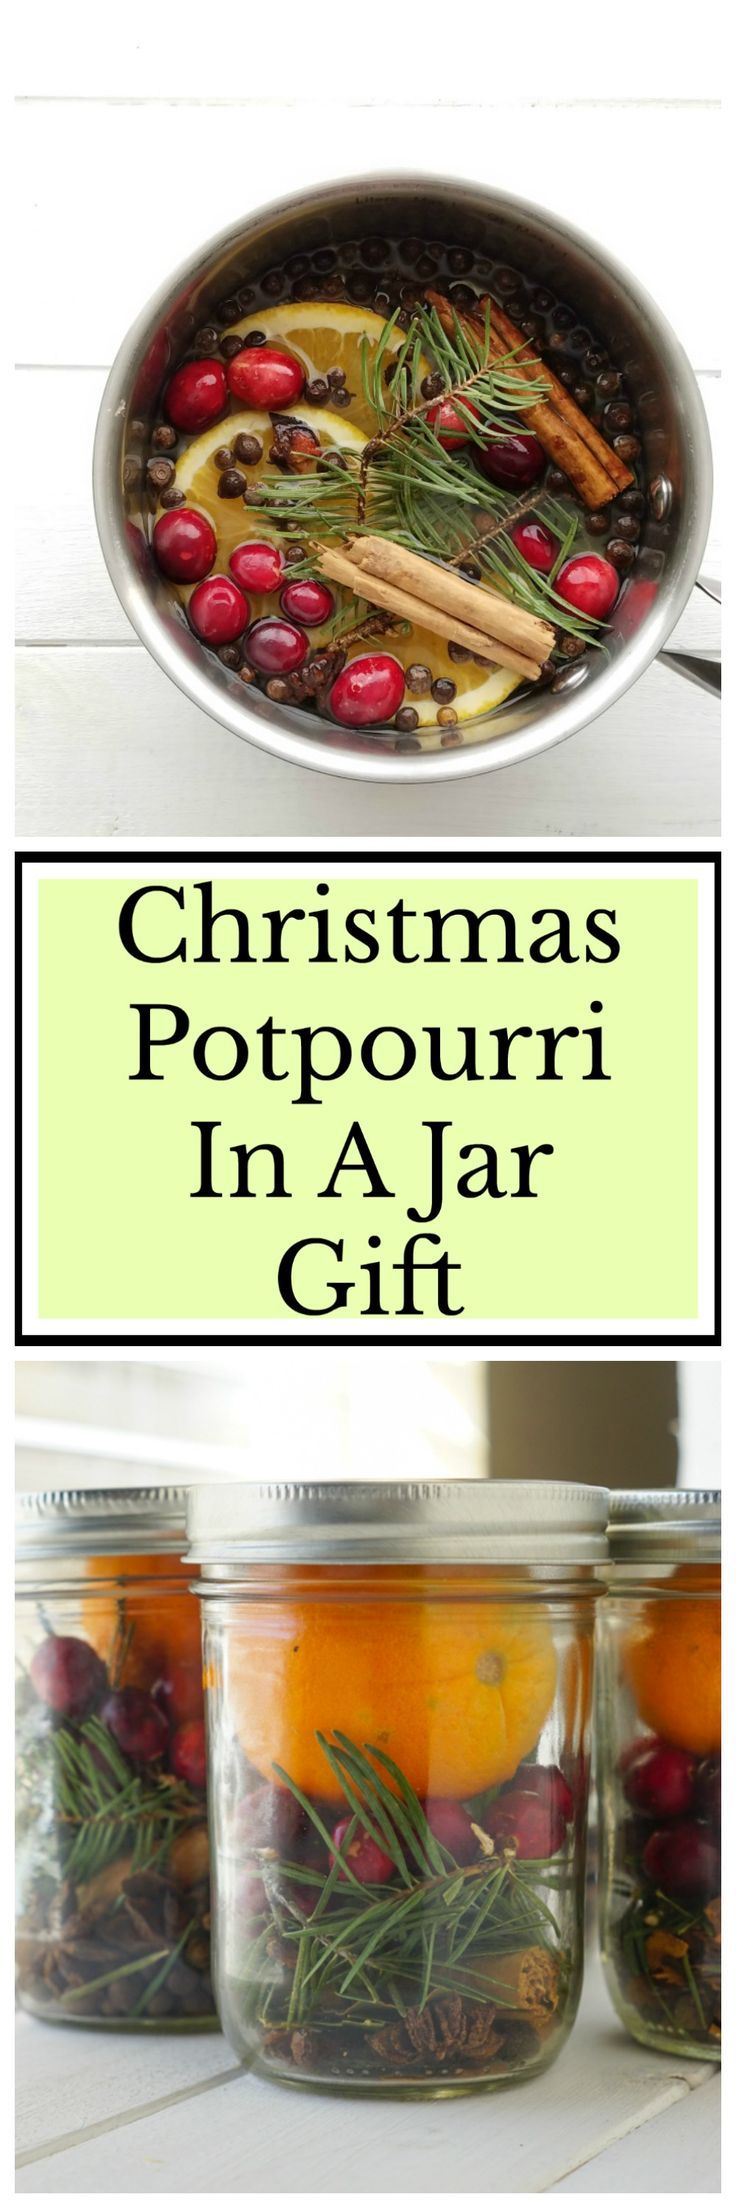 Easy to make Christmas Potpourri in a jar gift!